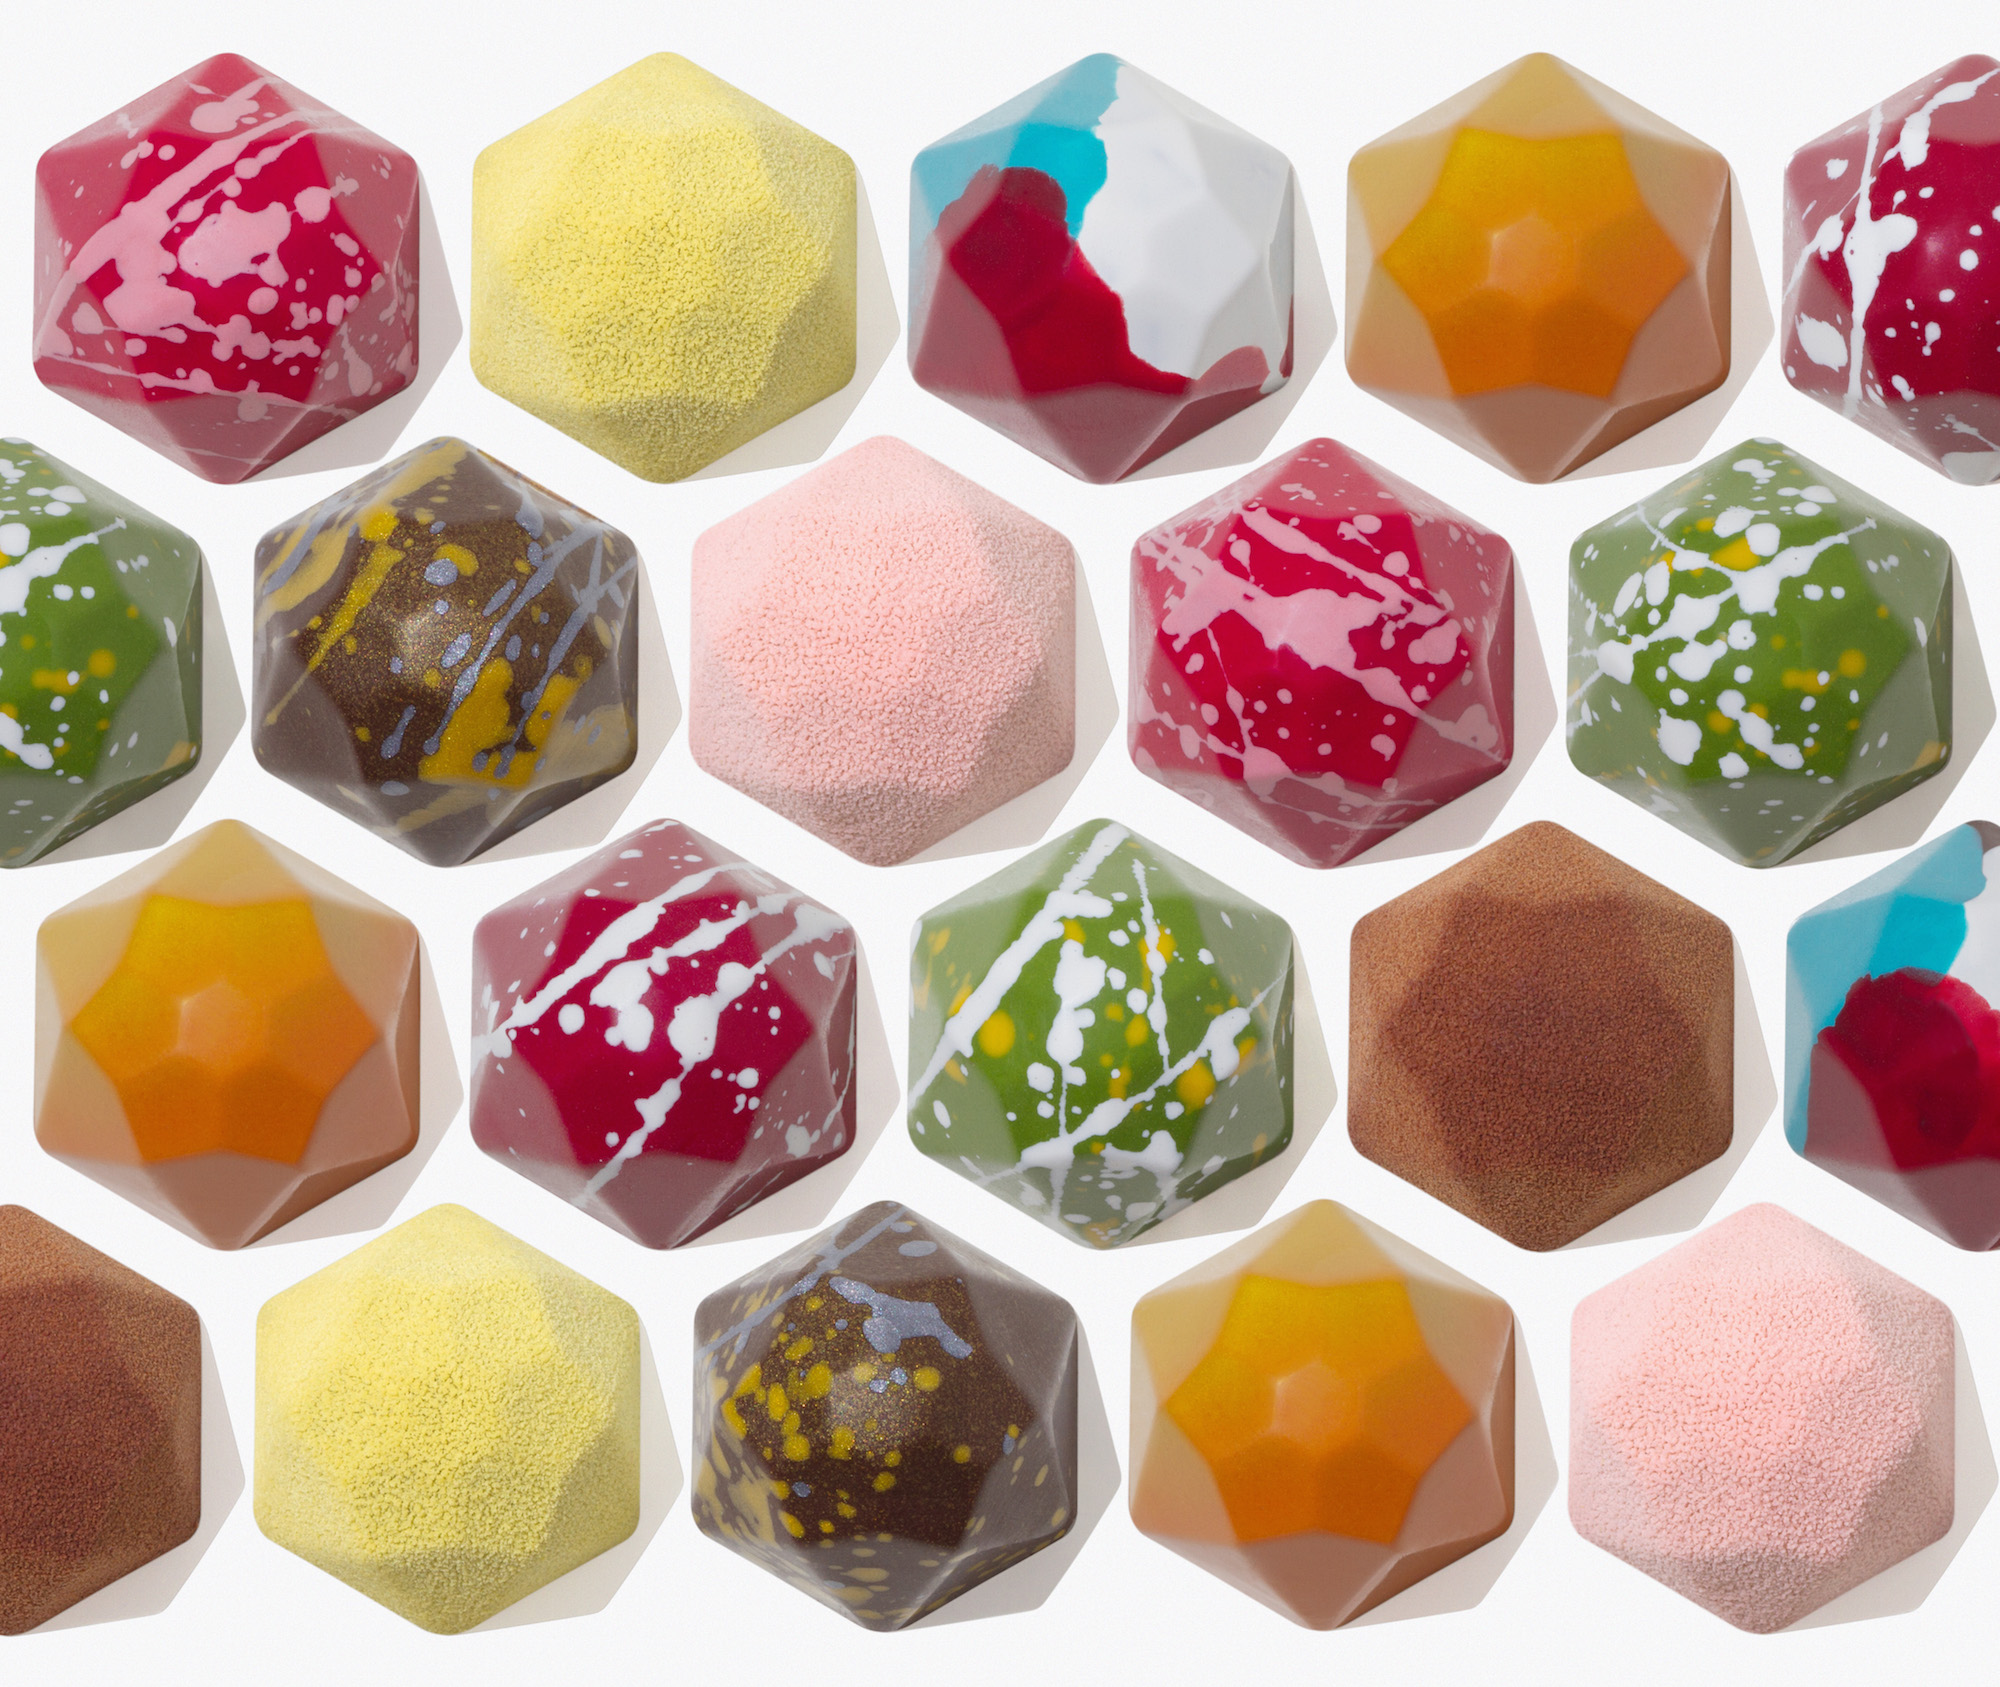 CXBO Classic Collection Hexagons